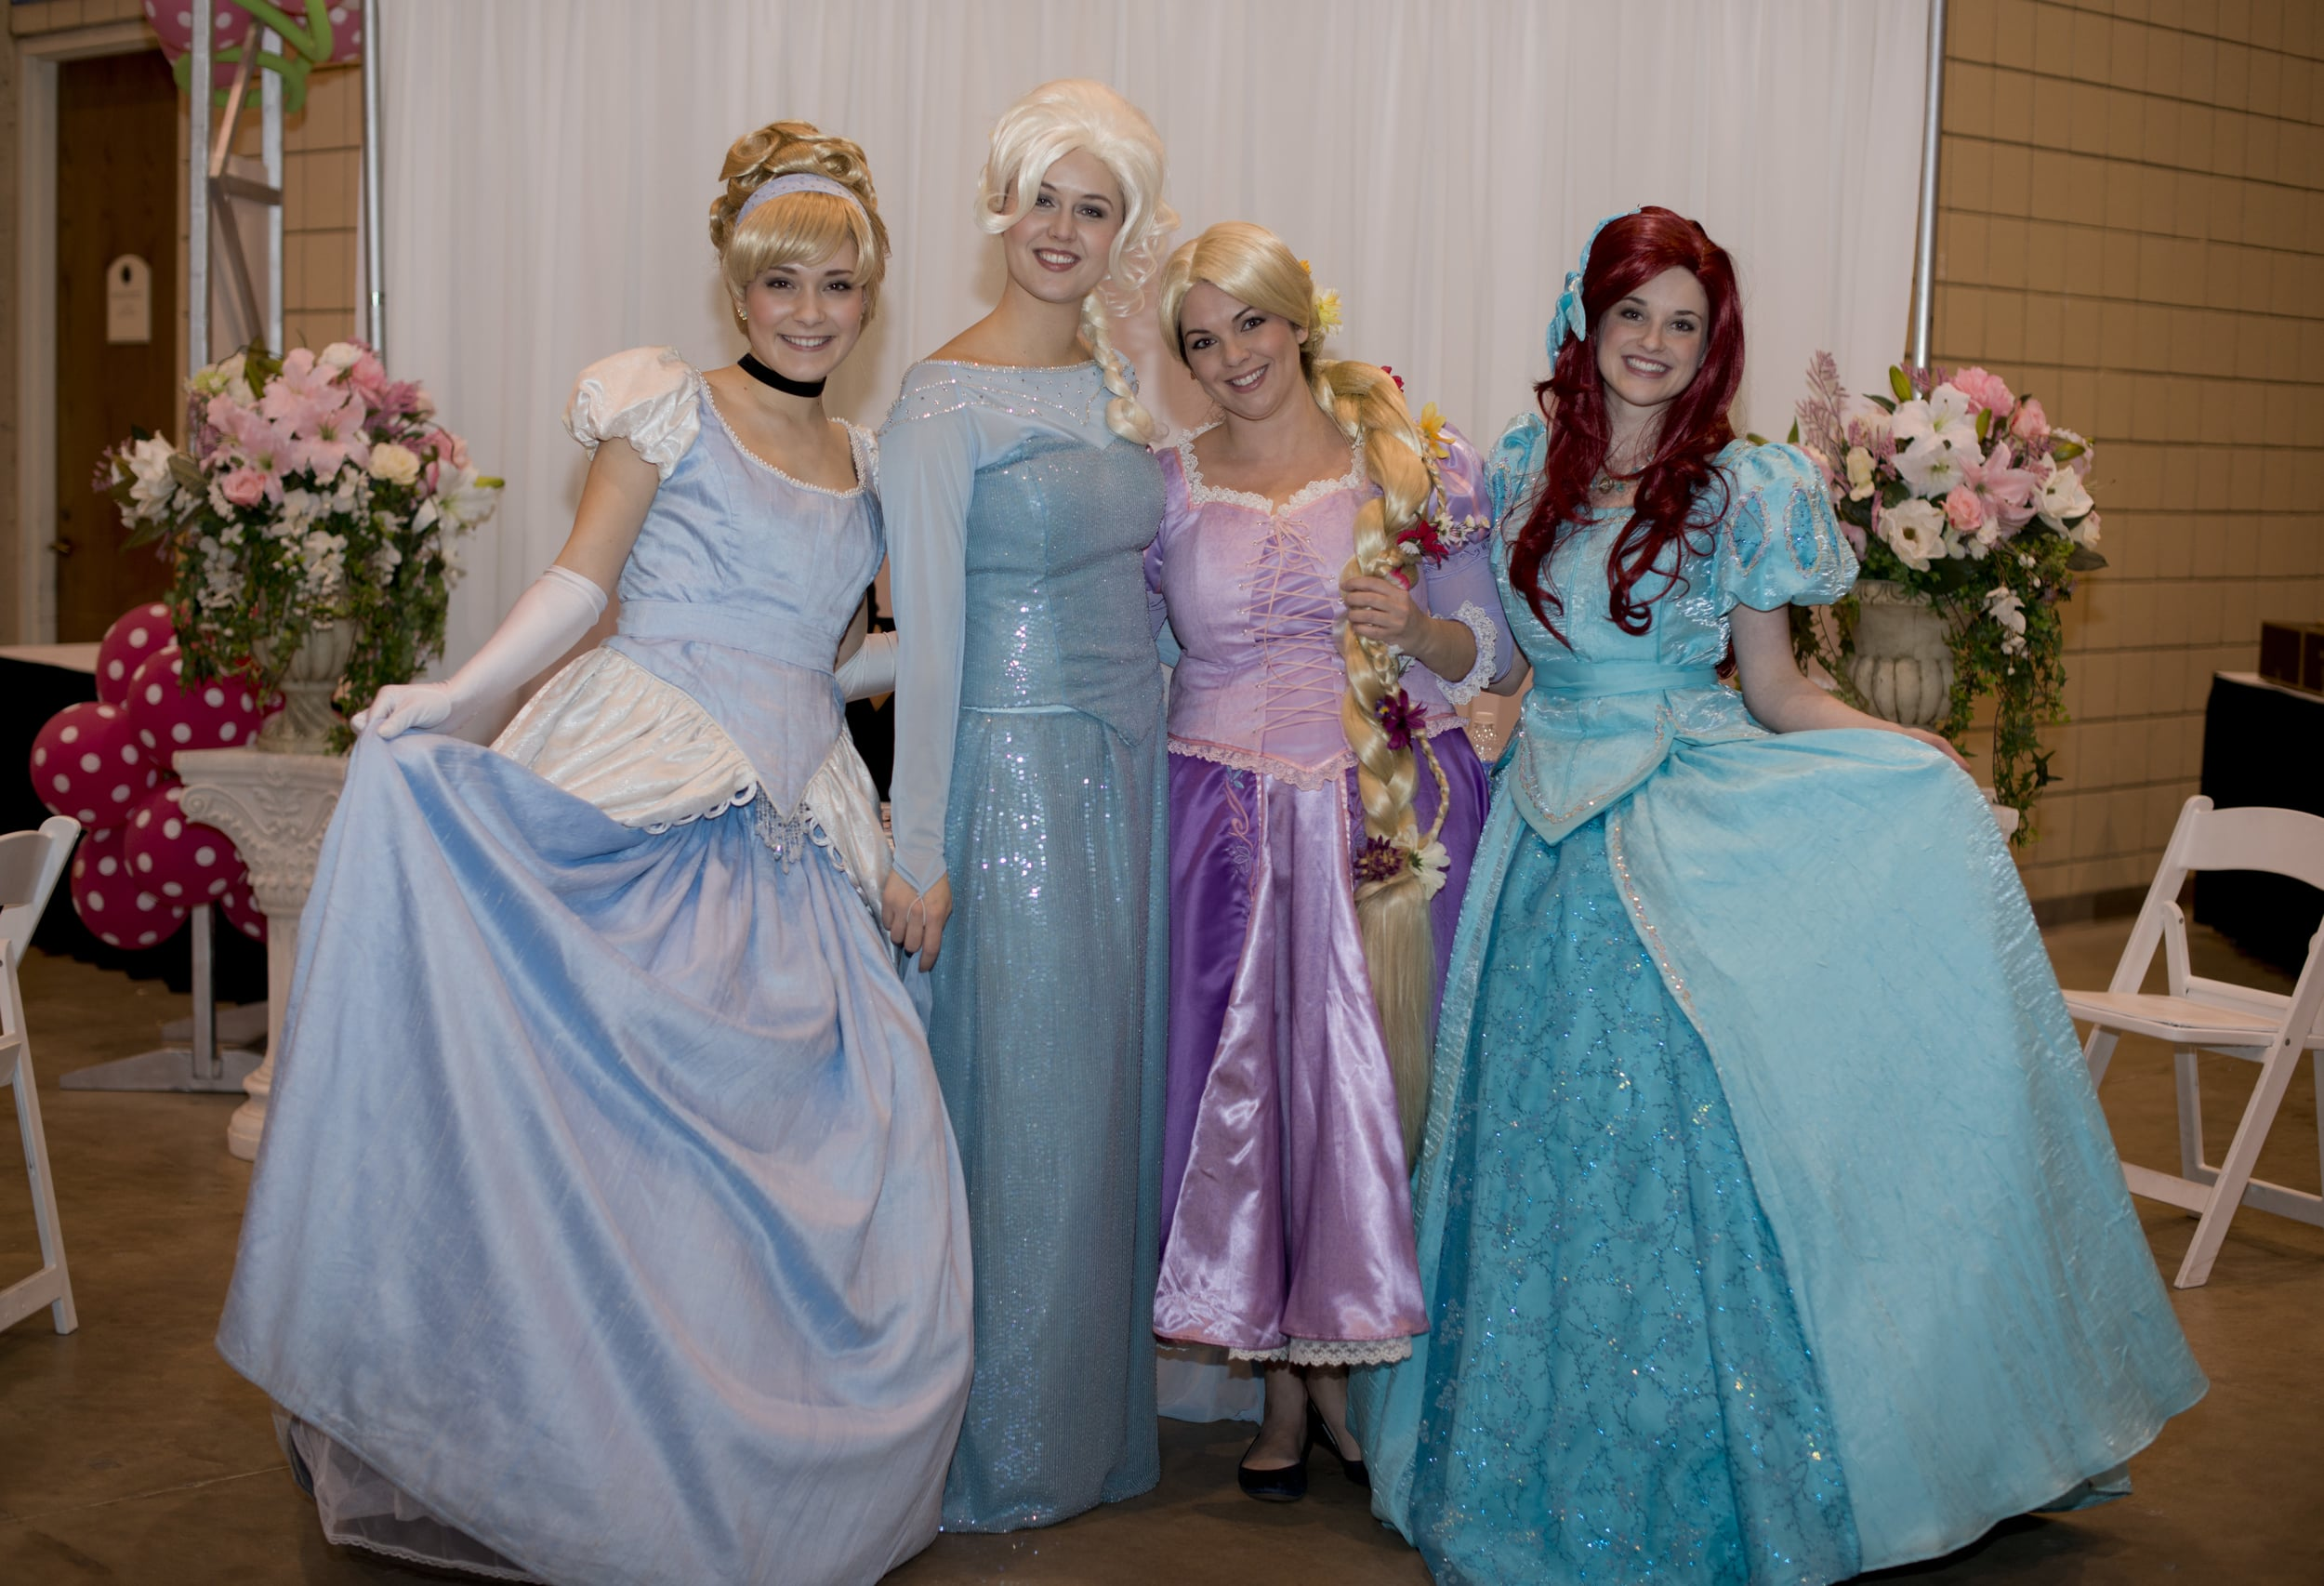 Wichita Women's Fair - Princess Party - JWild Photography (172).jpg